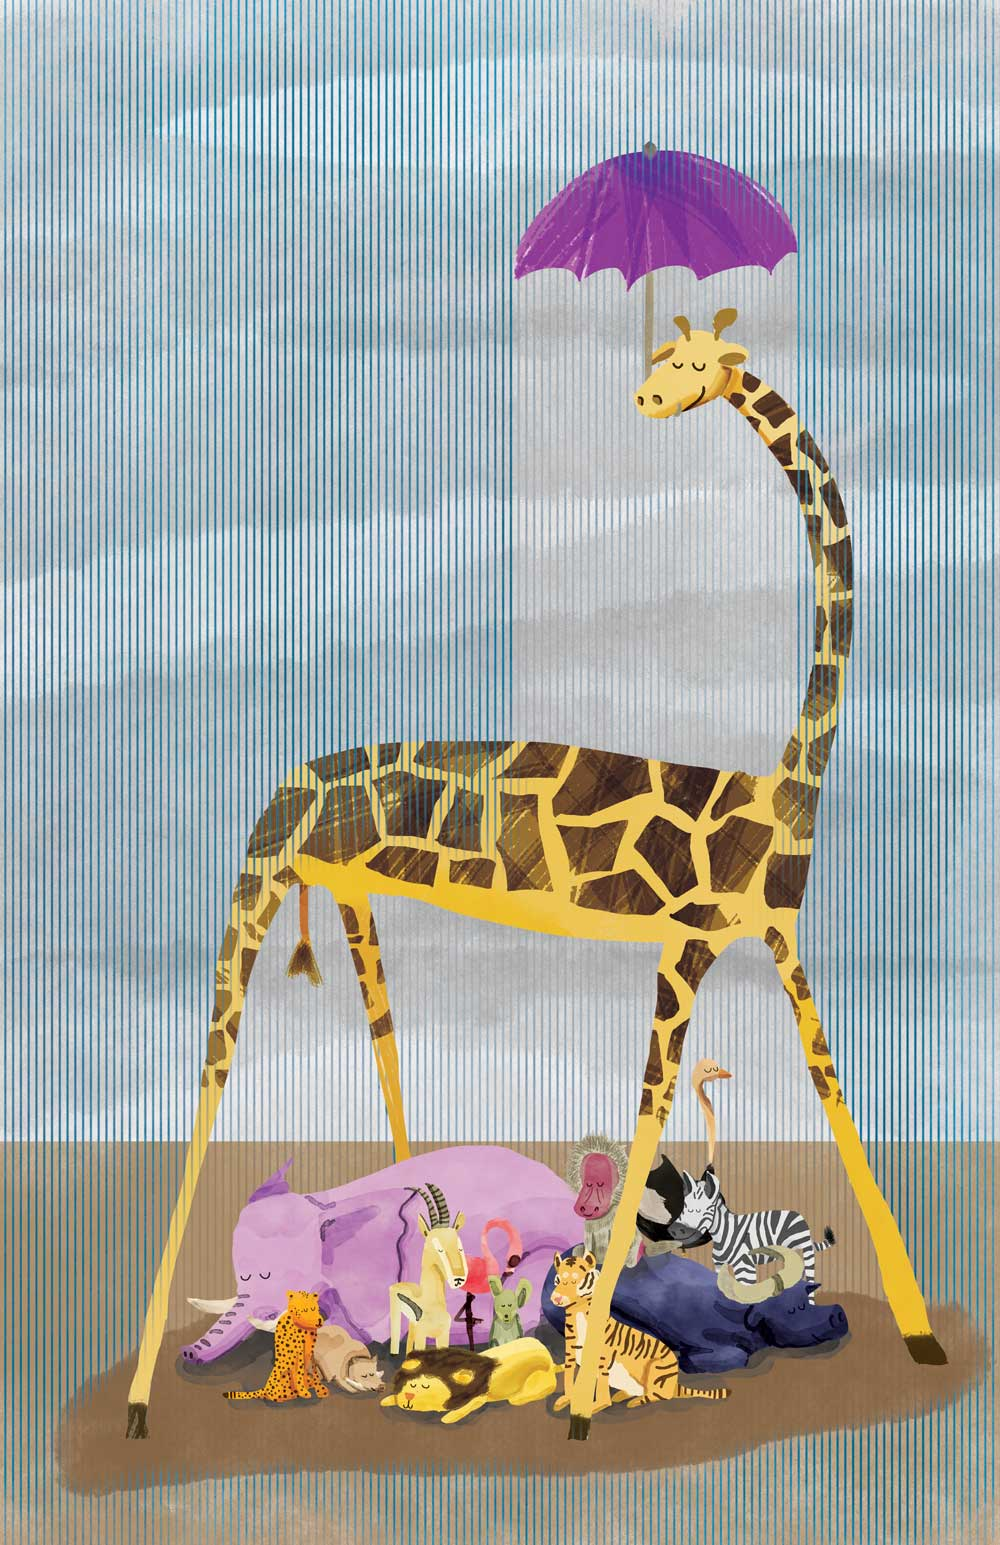 Giraffe and His Friends, 2015